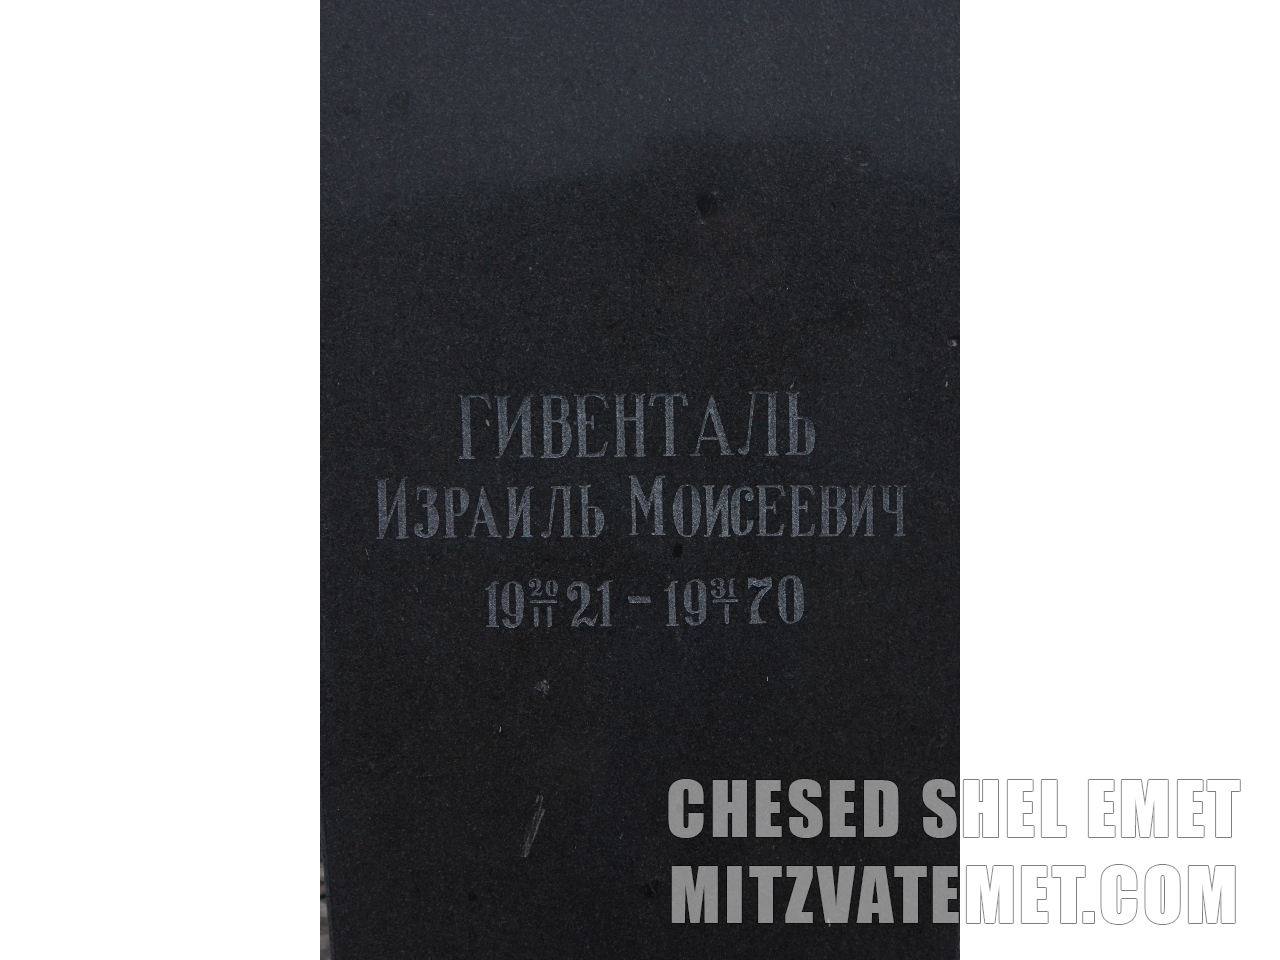 Givental Izrail Moiseyevich 1921-1970